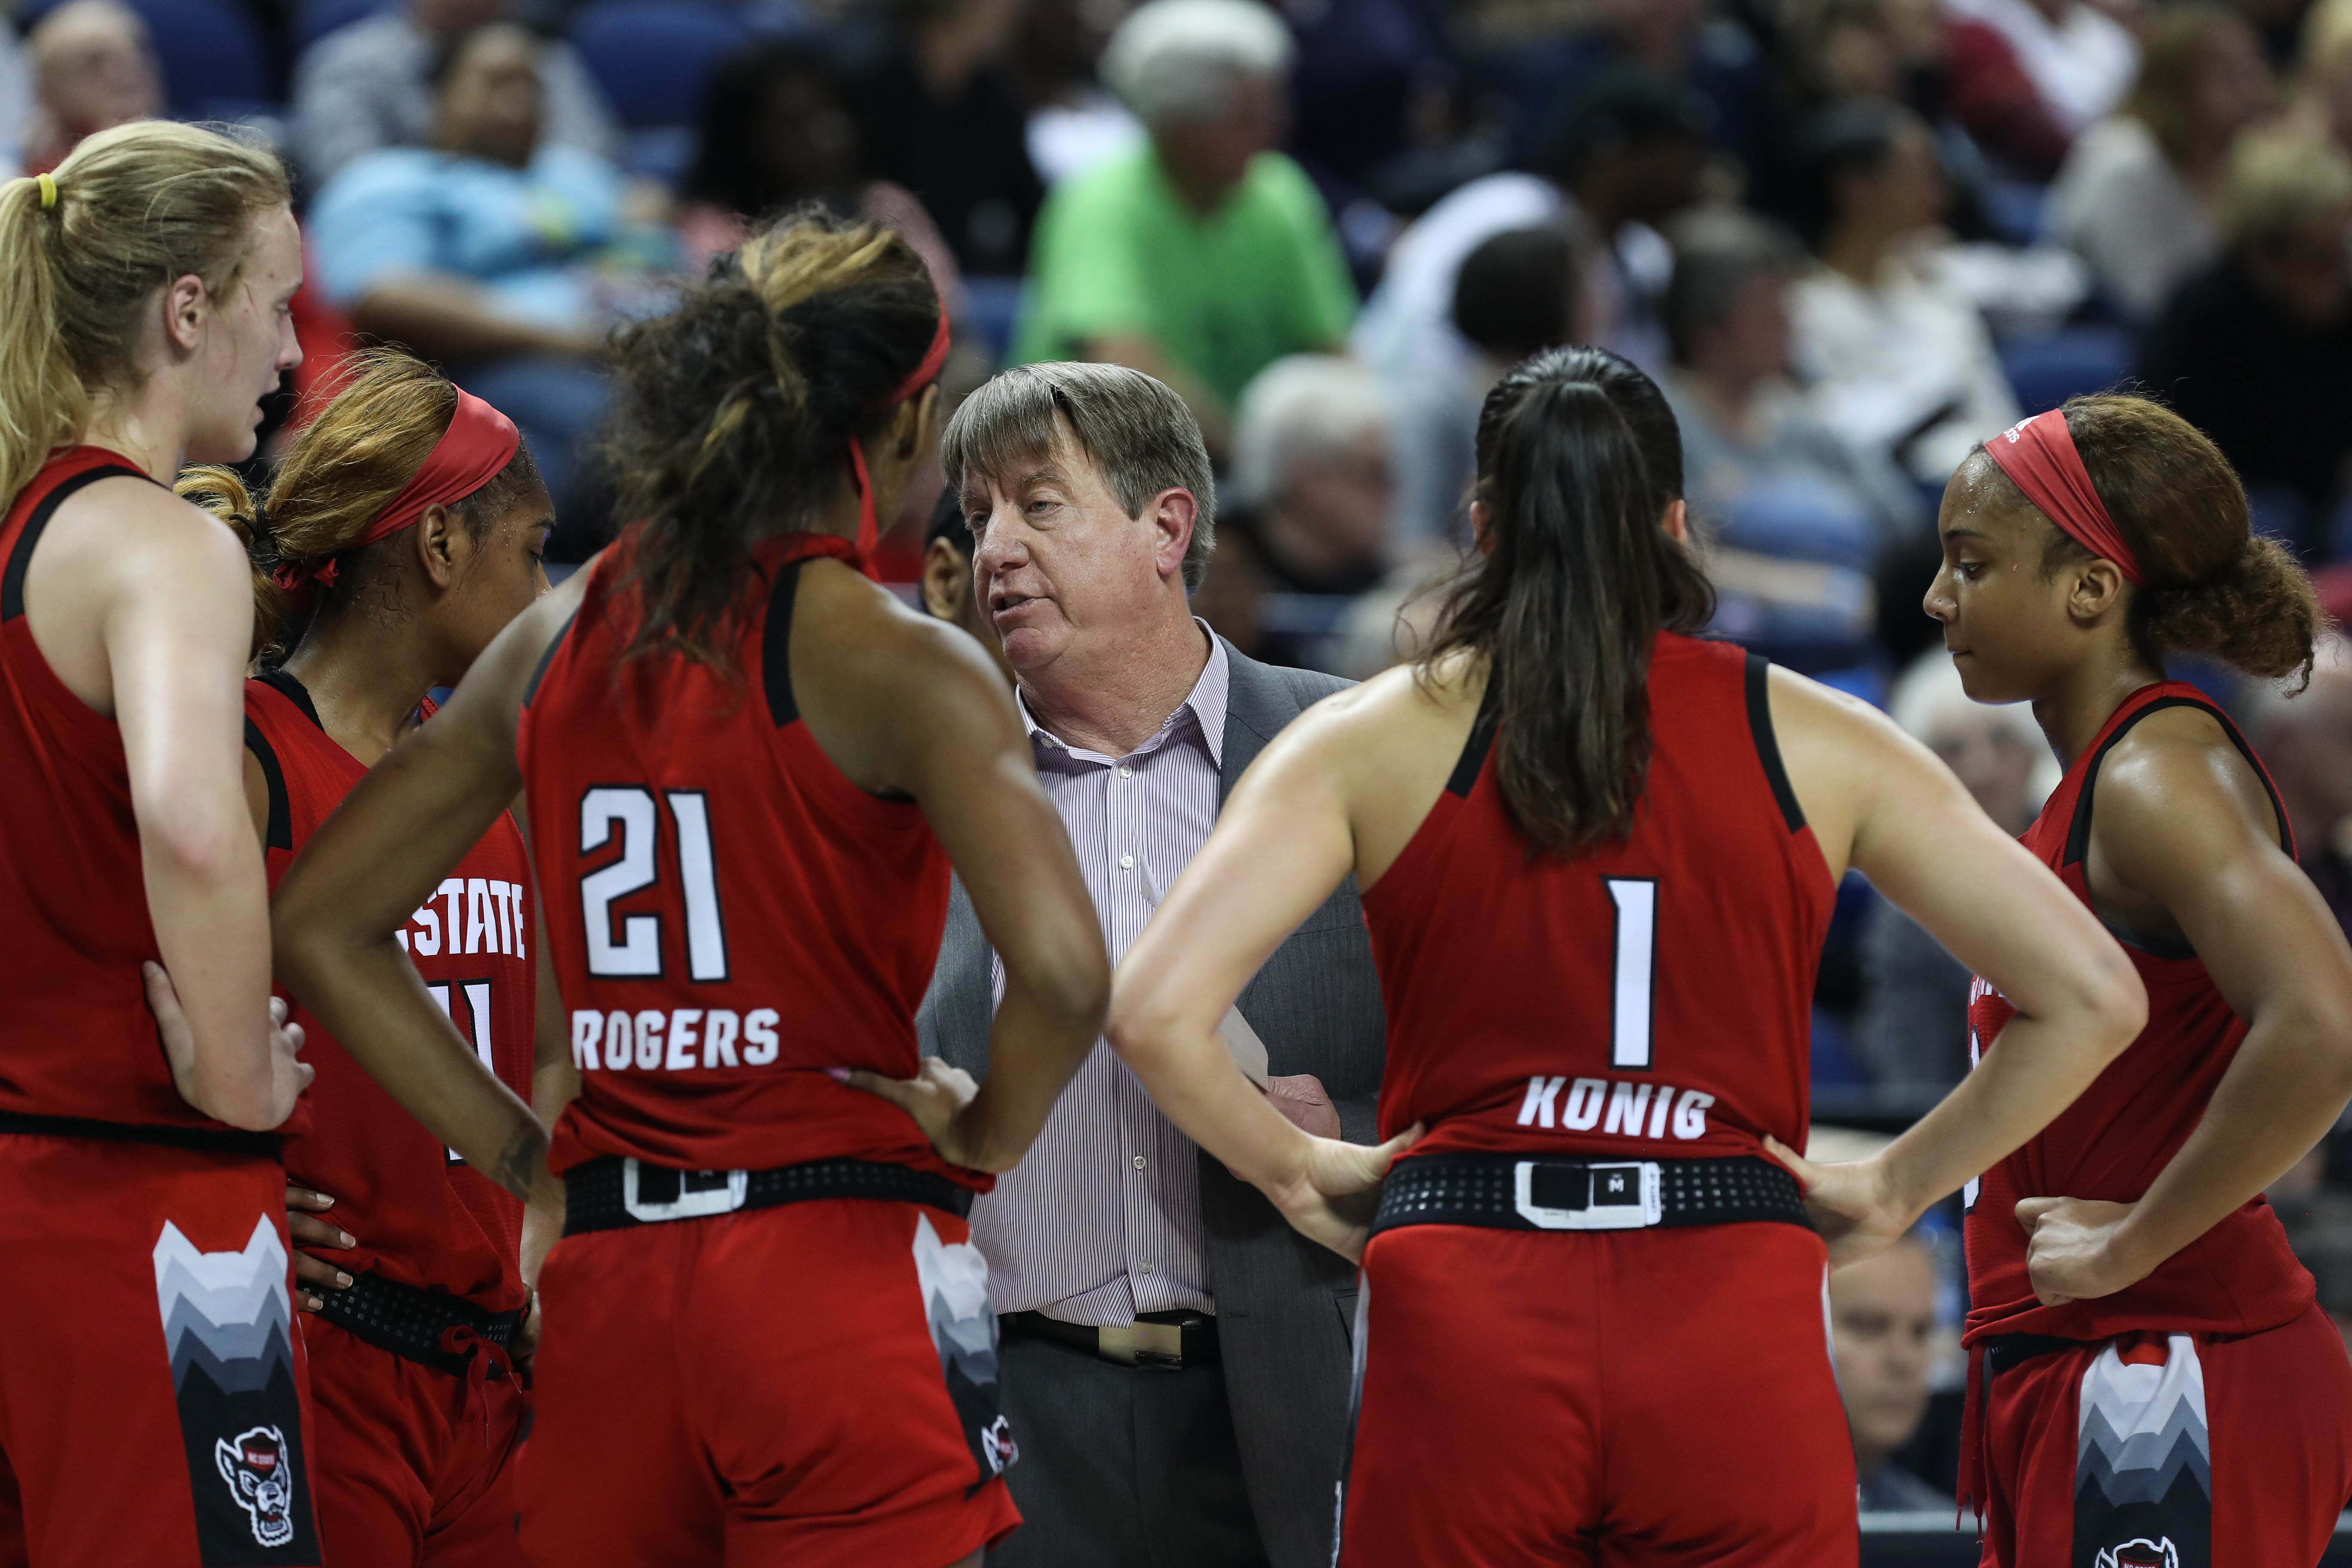 d3b0a557882 NC State advances to 2nd round of NCAAs with 63-51 win over Maine